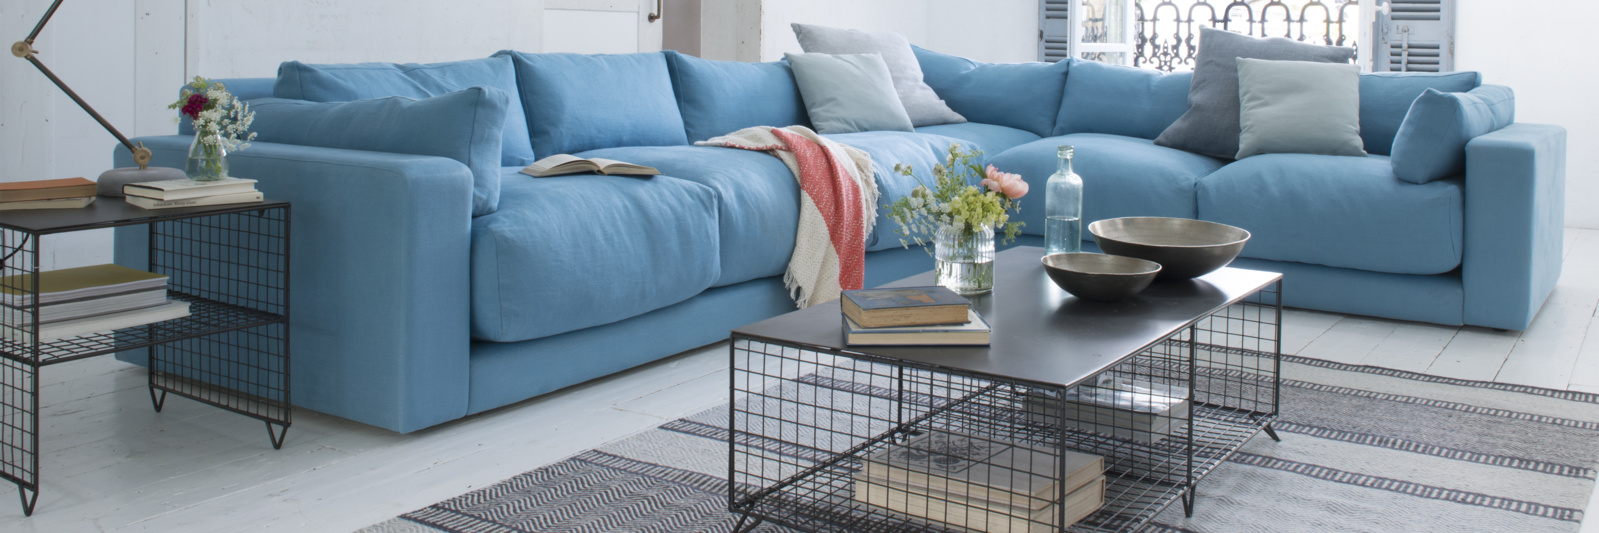 Atticus comfy British-made corner sofa